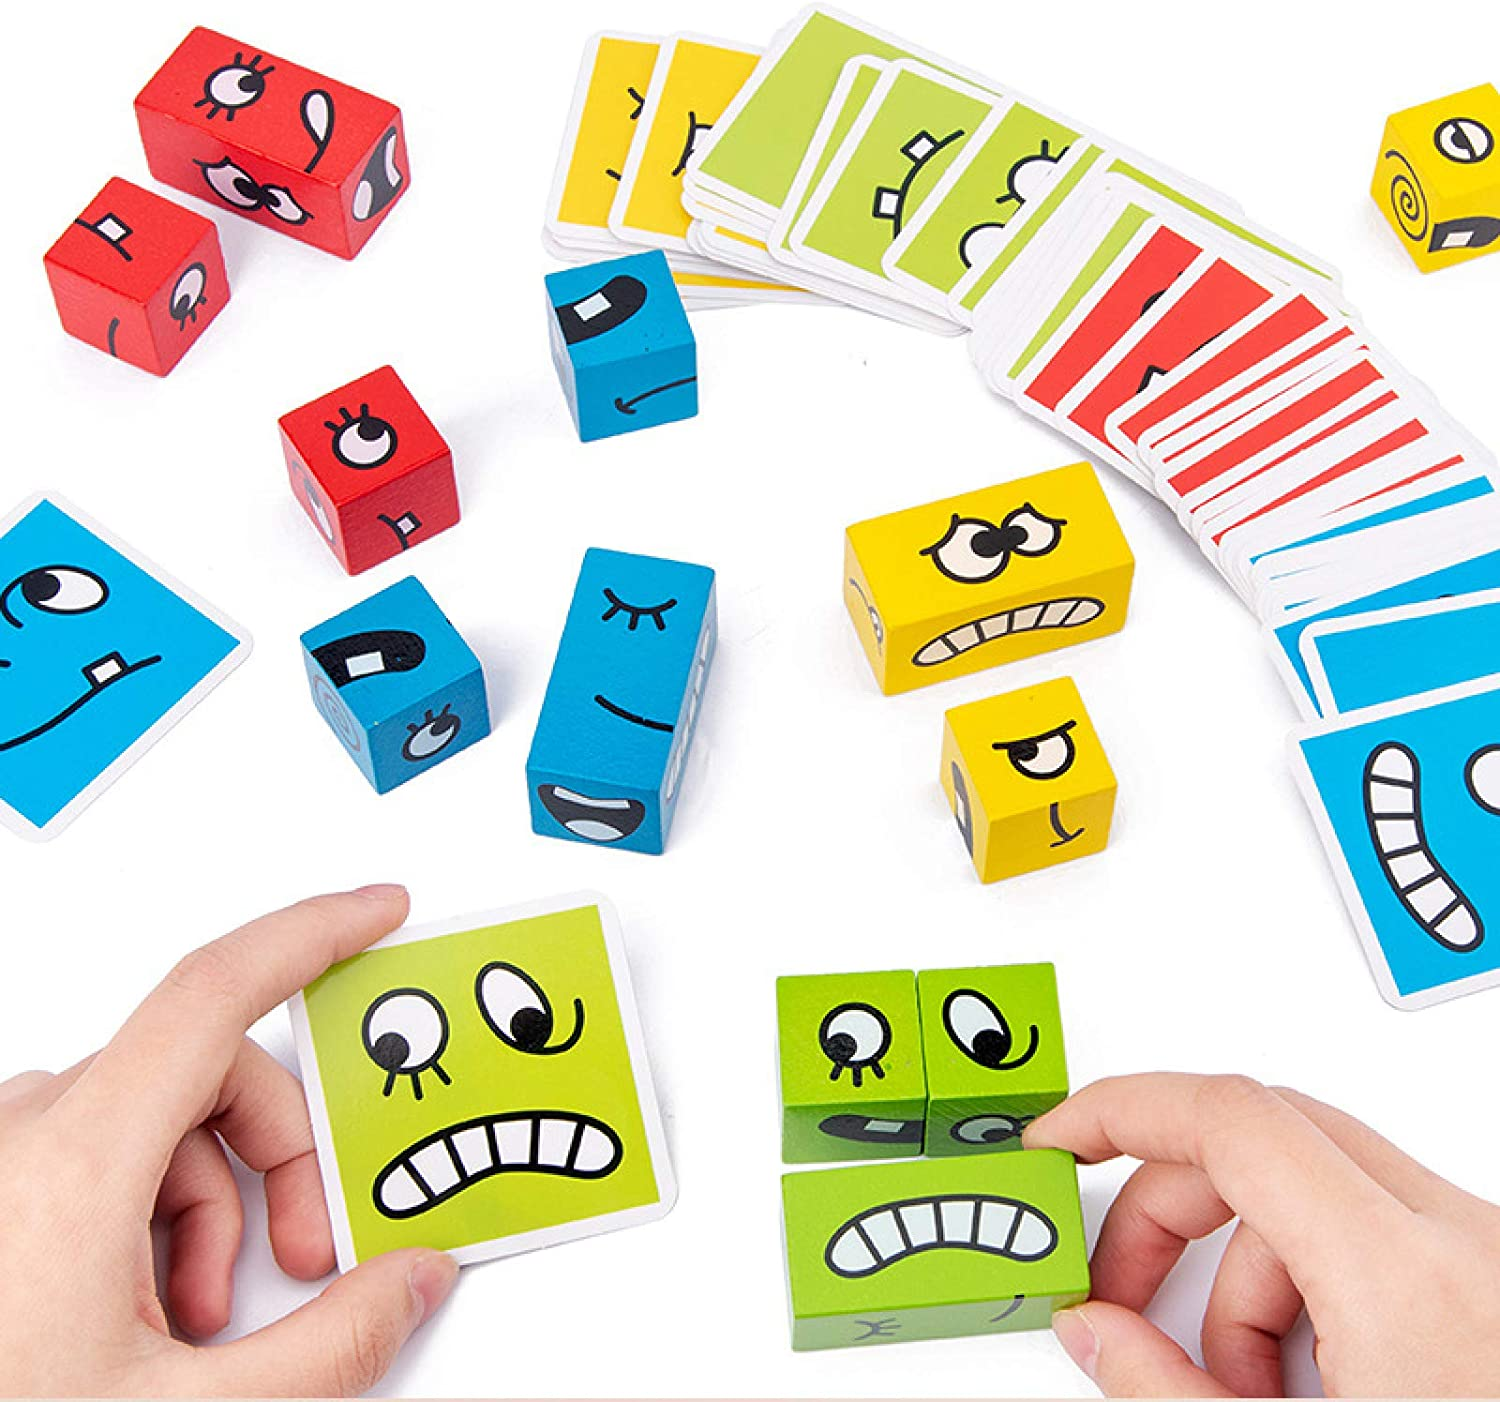 Syfinee Thinking Training Children Face-Changing Cubes Toy Christmas Gifts Wooden Puzzle, Funny Expression Puzzle Colorful Magic Cube For Children 3-5 Year Boy Girl Kids Gift g Game